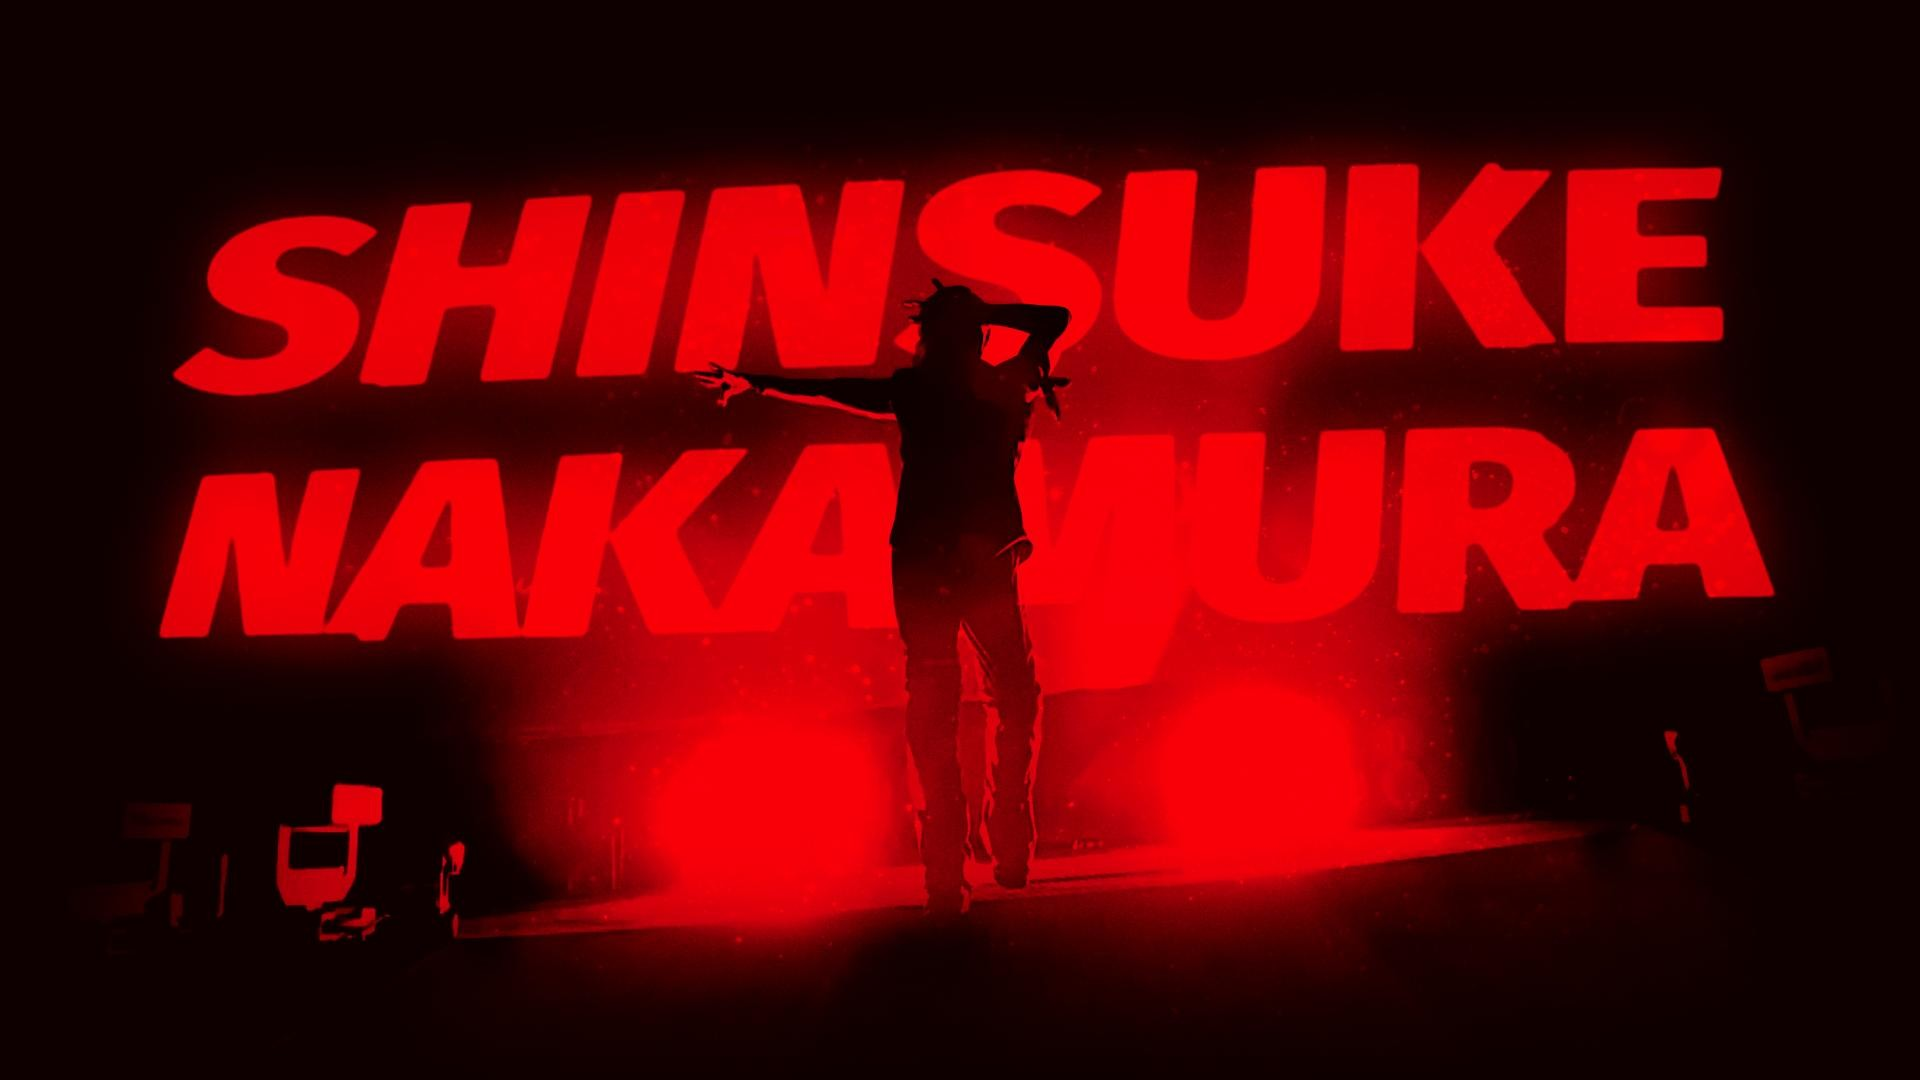 1920x1080 [NXT TAKEOVER SPOILERS] Nakamura Entrance Wallpaper.